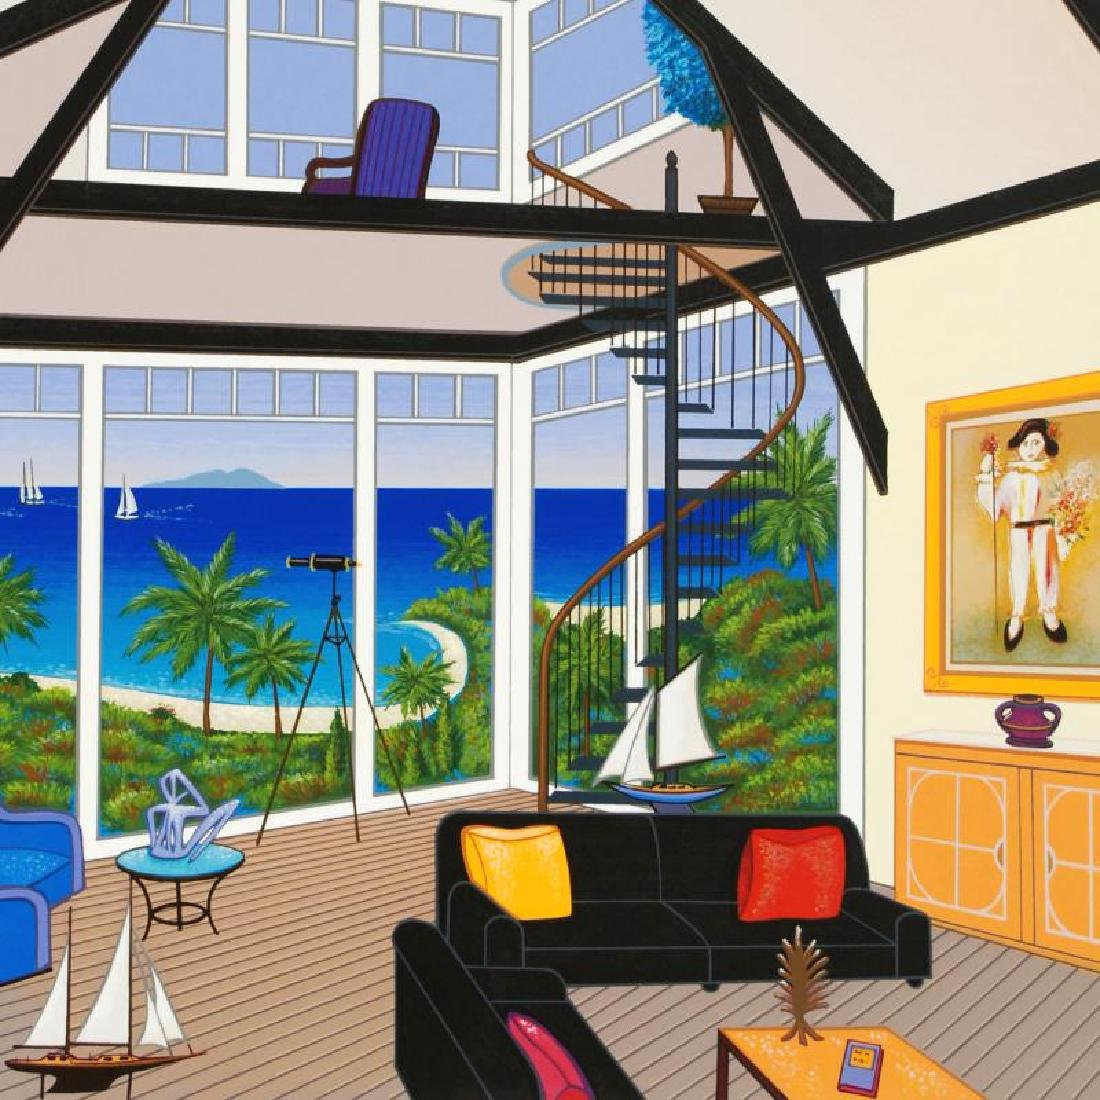 Duplex Over Stinson Limited Edition Serigraph by Fanch - 4